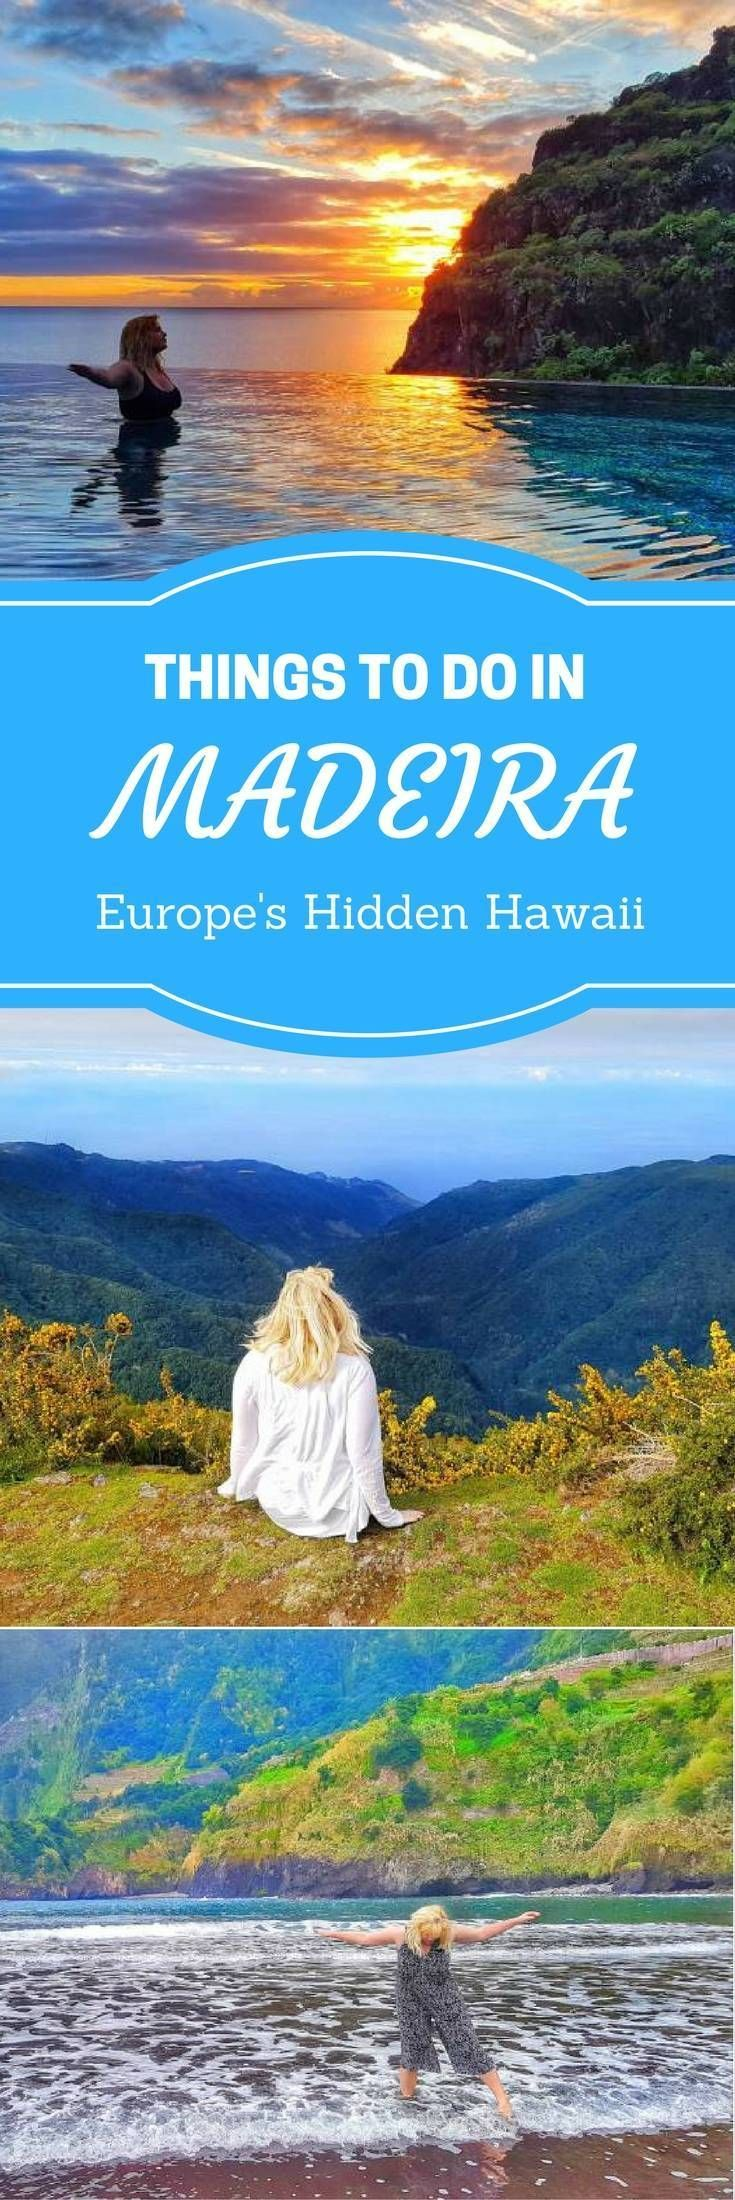 Things to do in Madeira – Europe's Hidden Hawaii